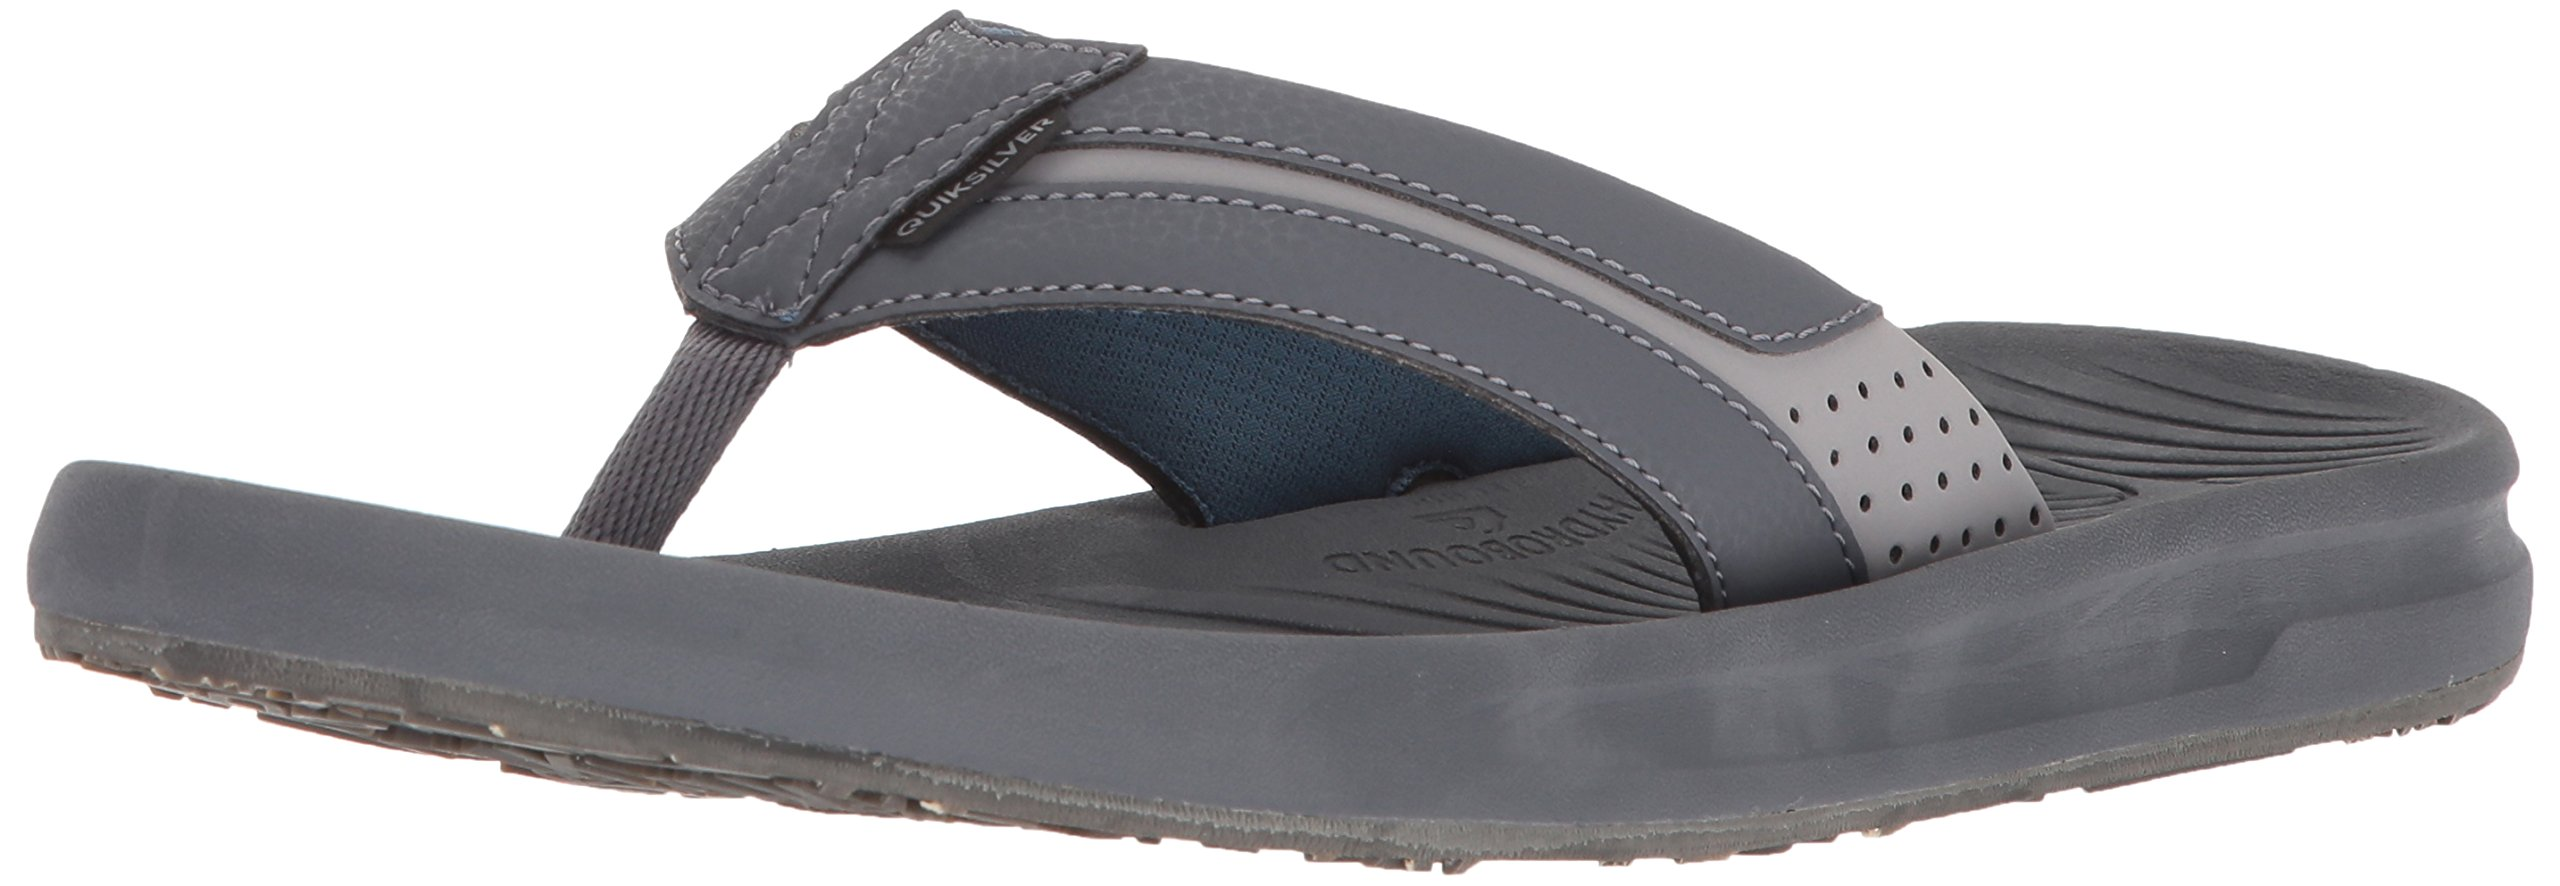 Quiksilver Men's Travel Oasis Sandal, Grey/Brown/Blue, 14 M US